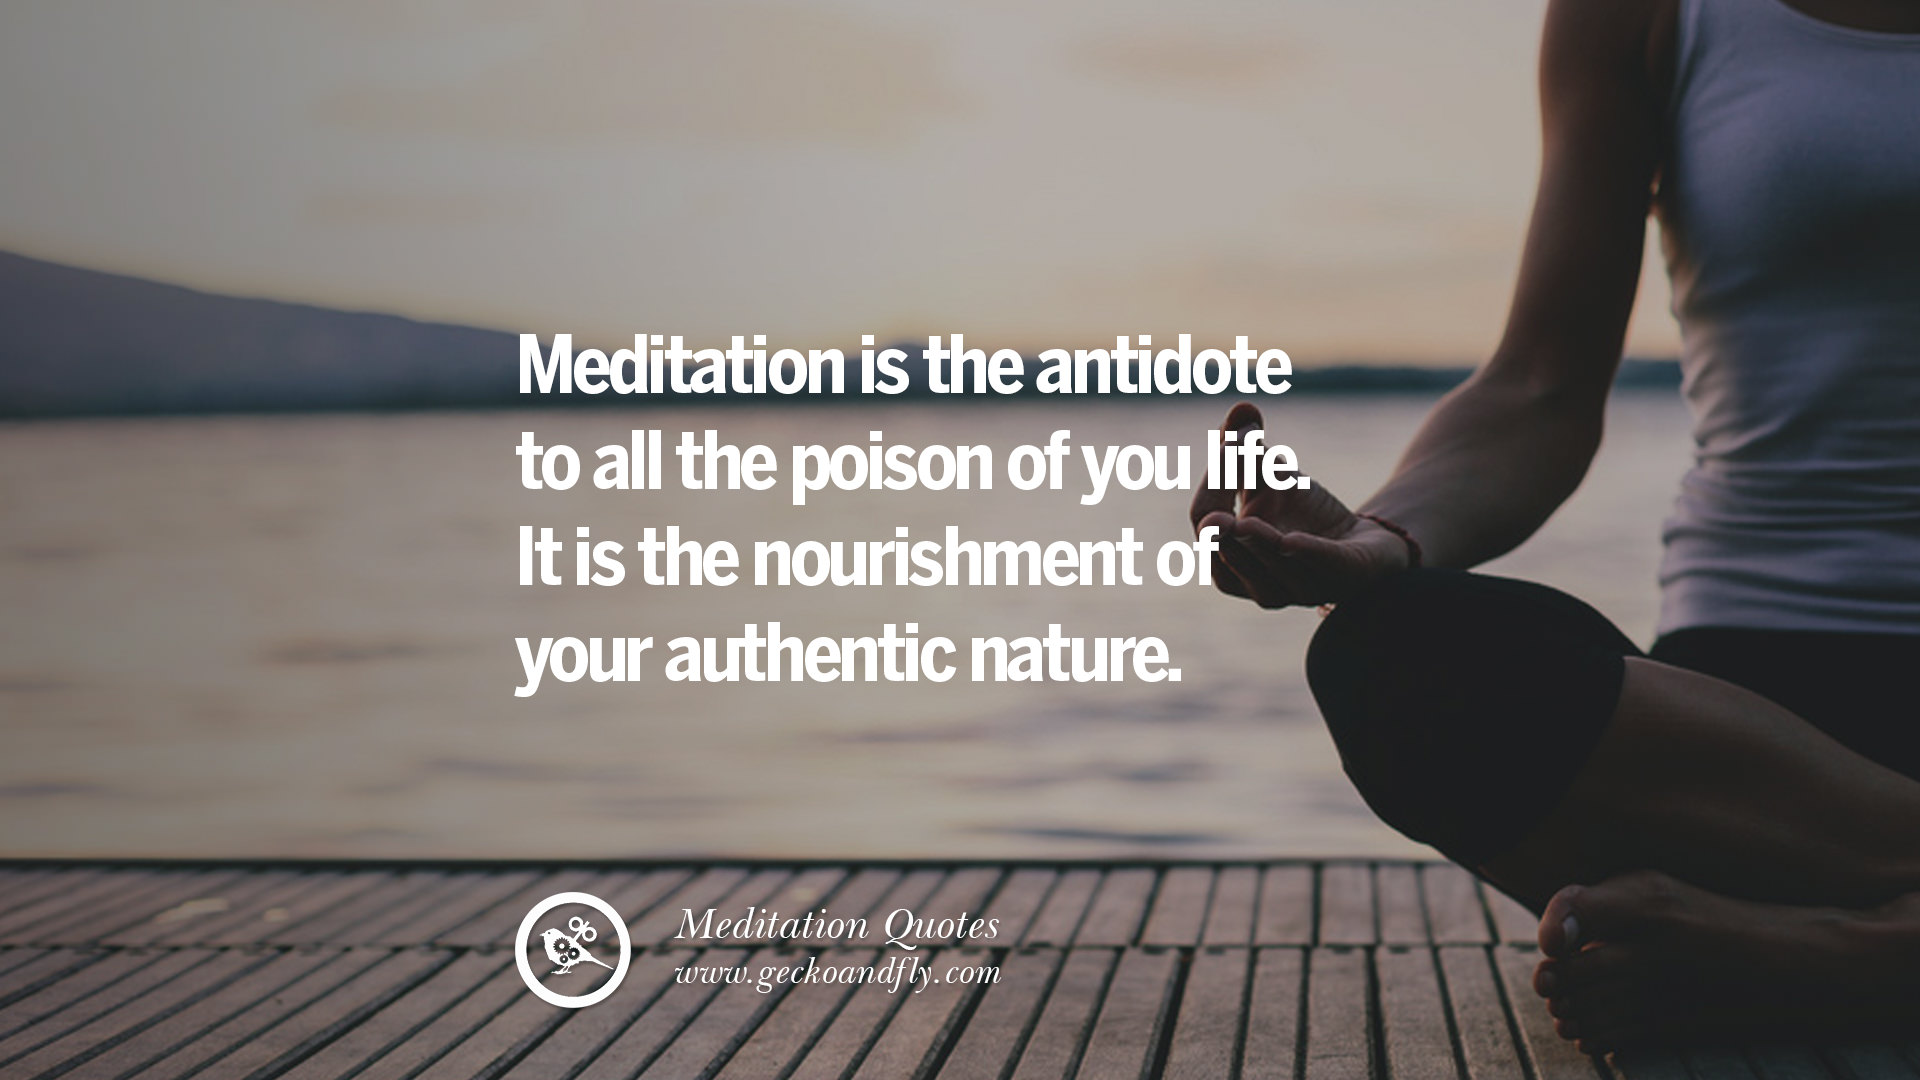 Create Your Own Quote Wallpaper Free 36 Famous Quotes On Mindfulness Meditation For Yoga